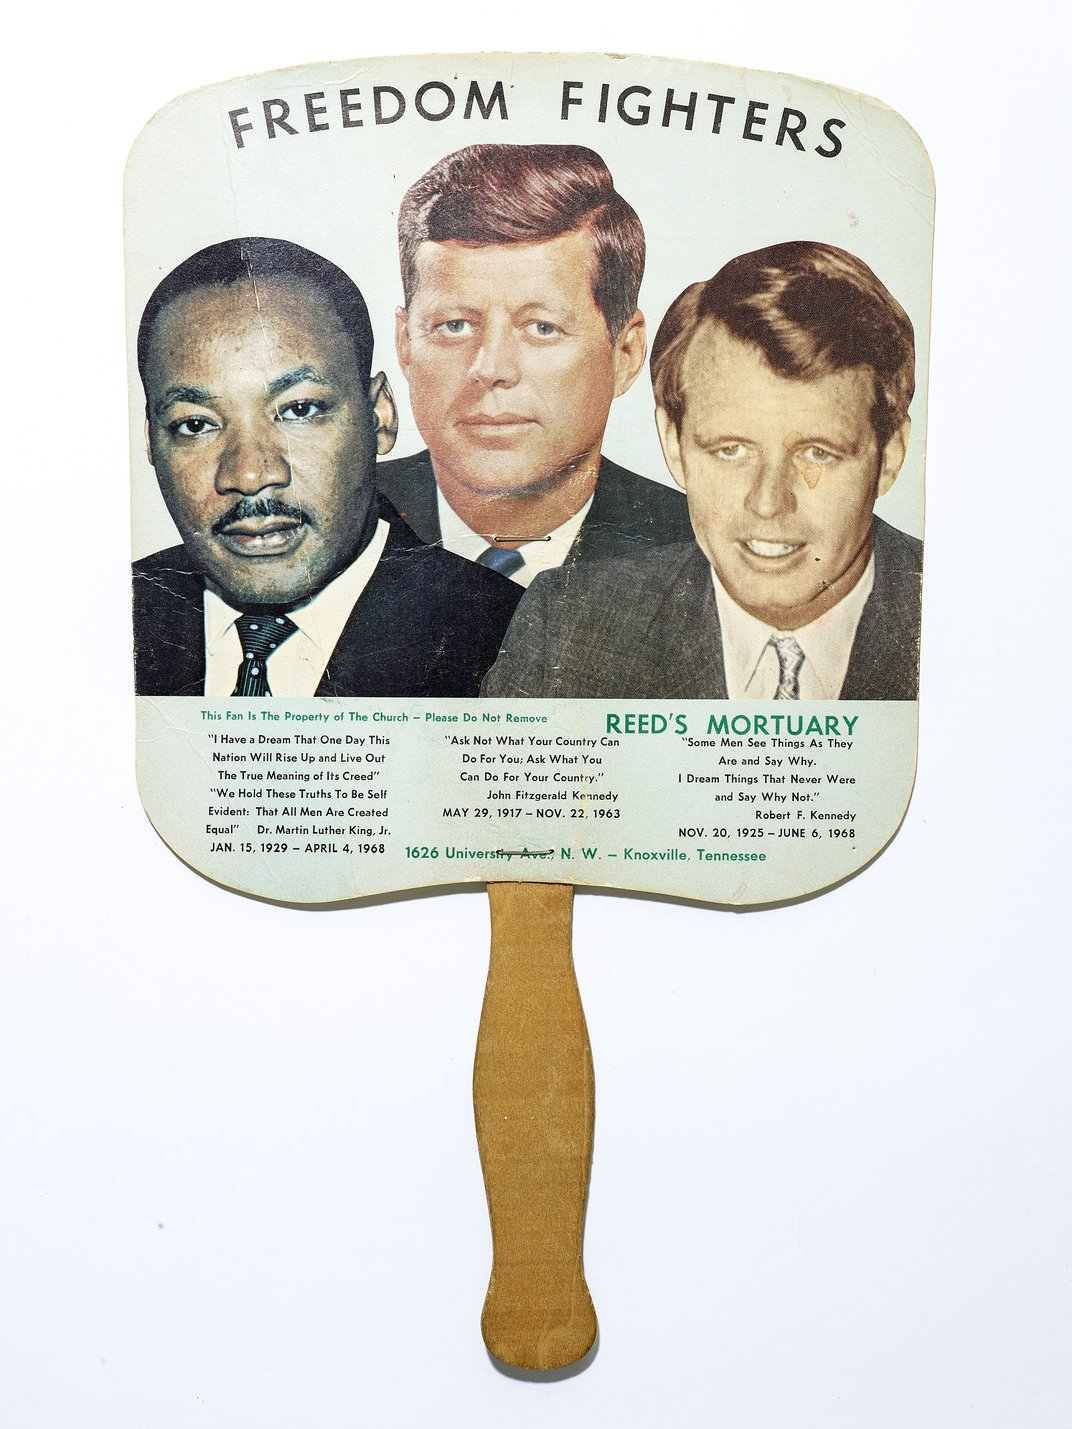 When Robert Kennedy Delivered the News of Martin Luther King's Assassination